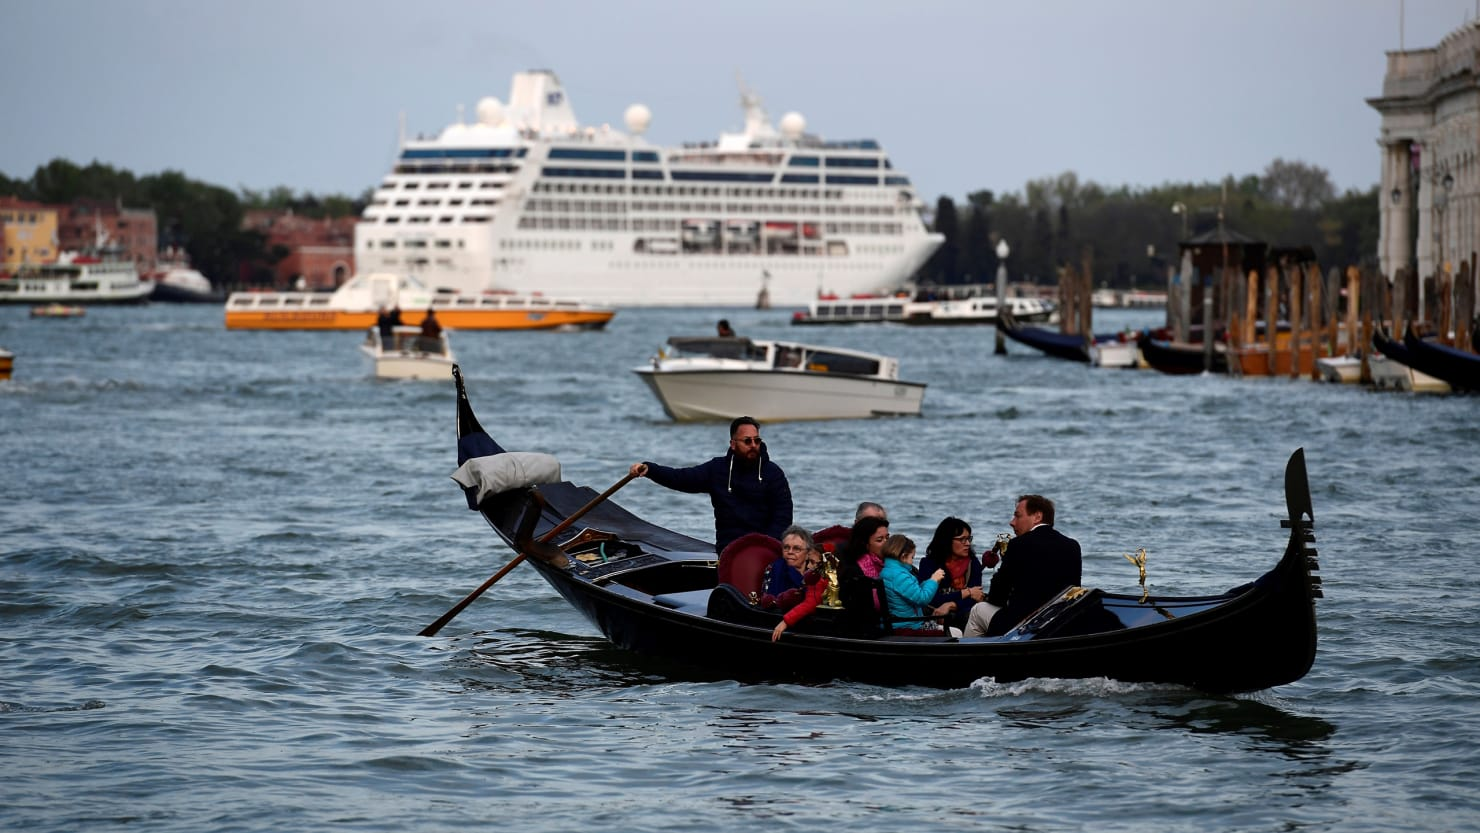 Venice Bans Giant Cruise Ships Sort Of - Waterway cruises